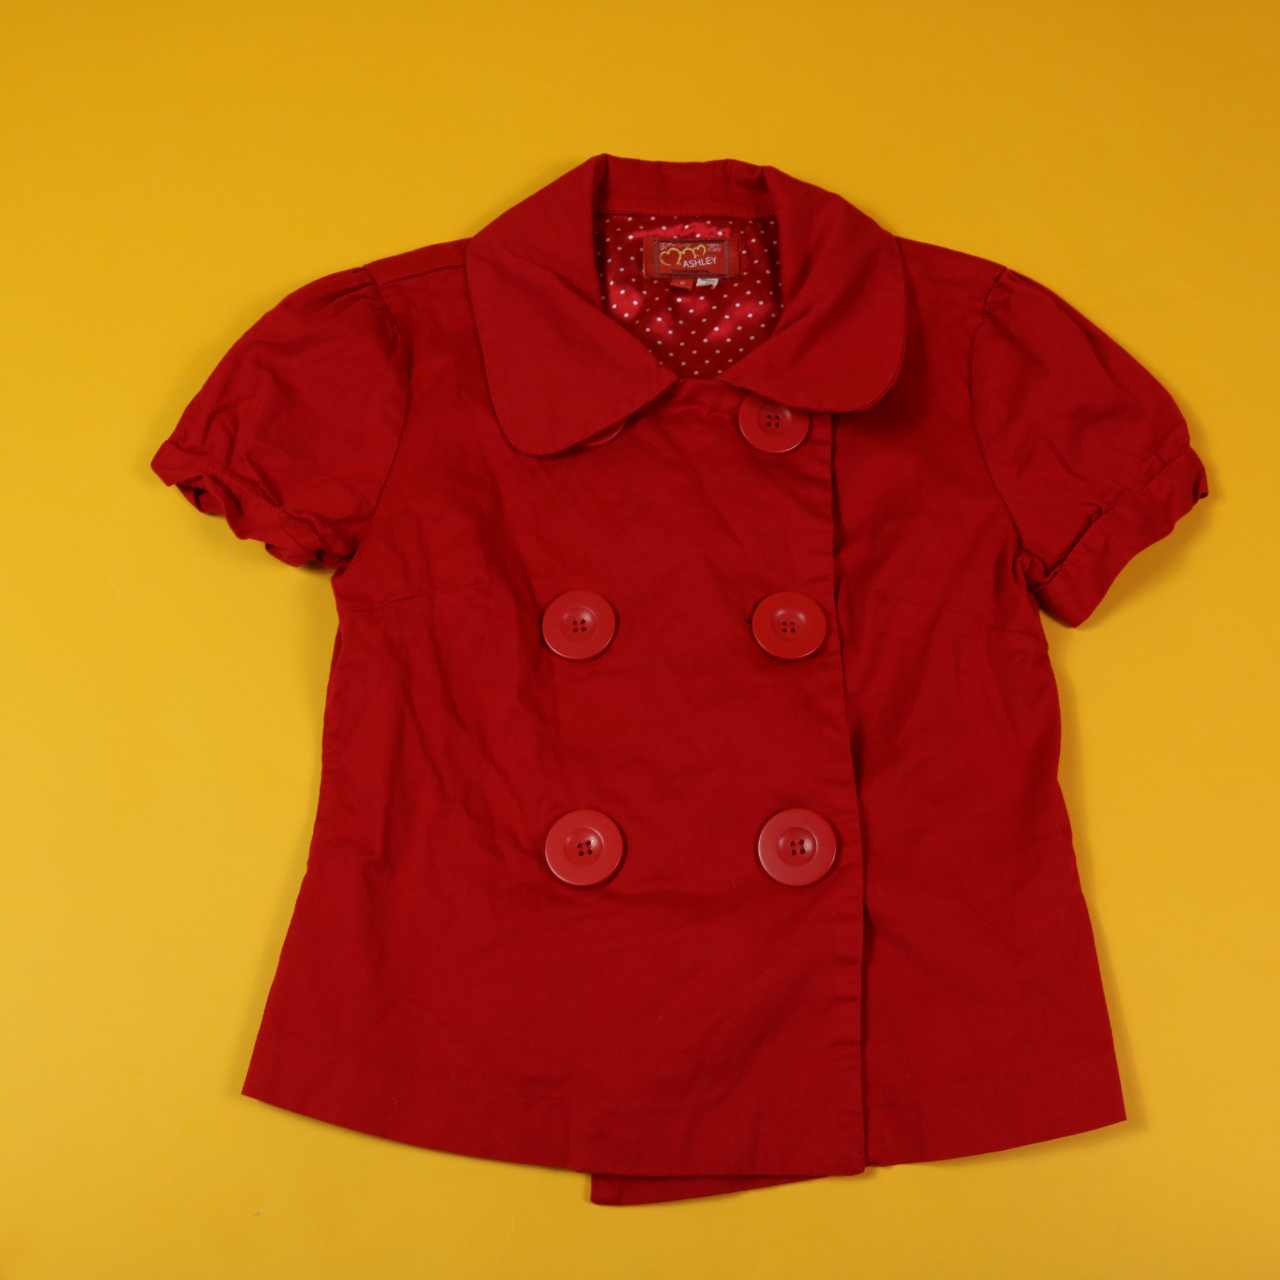 Product Image 1 - Y2k Button up shirt 🍄 Brand: